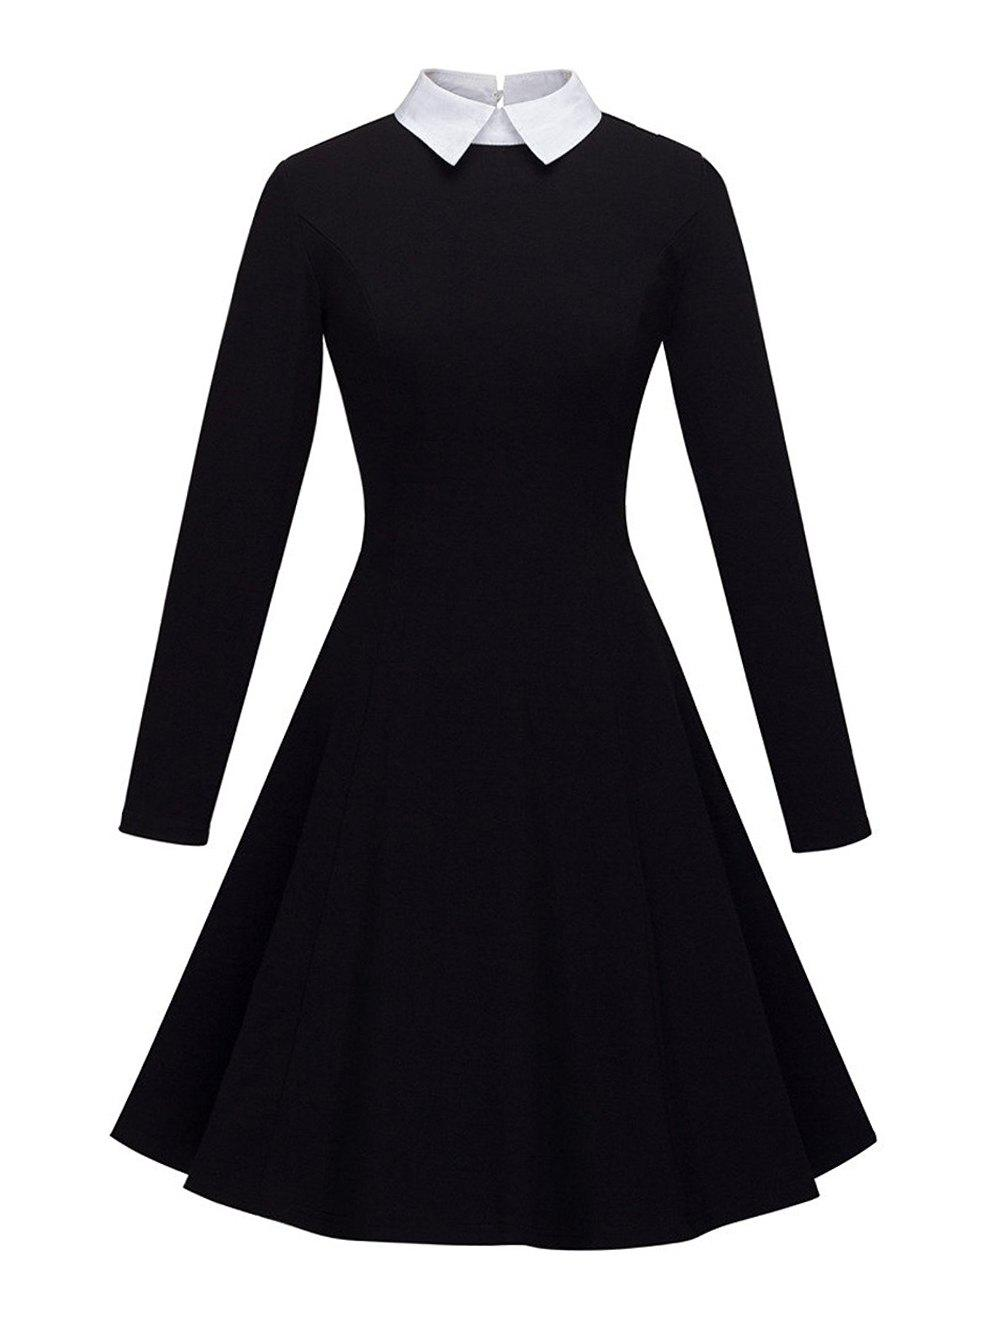 Affordable Women's Peter Pan Lapel Collar Long Sleeve  Fit and Flare Dress